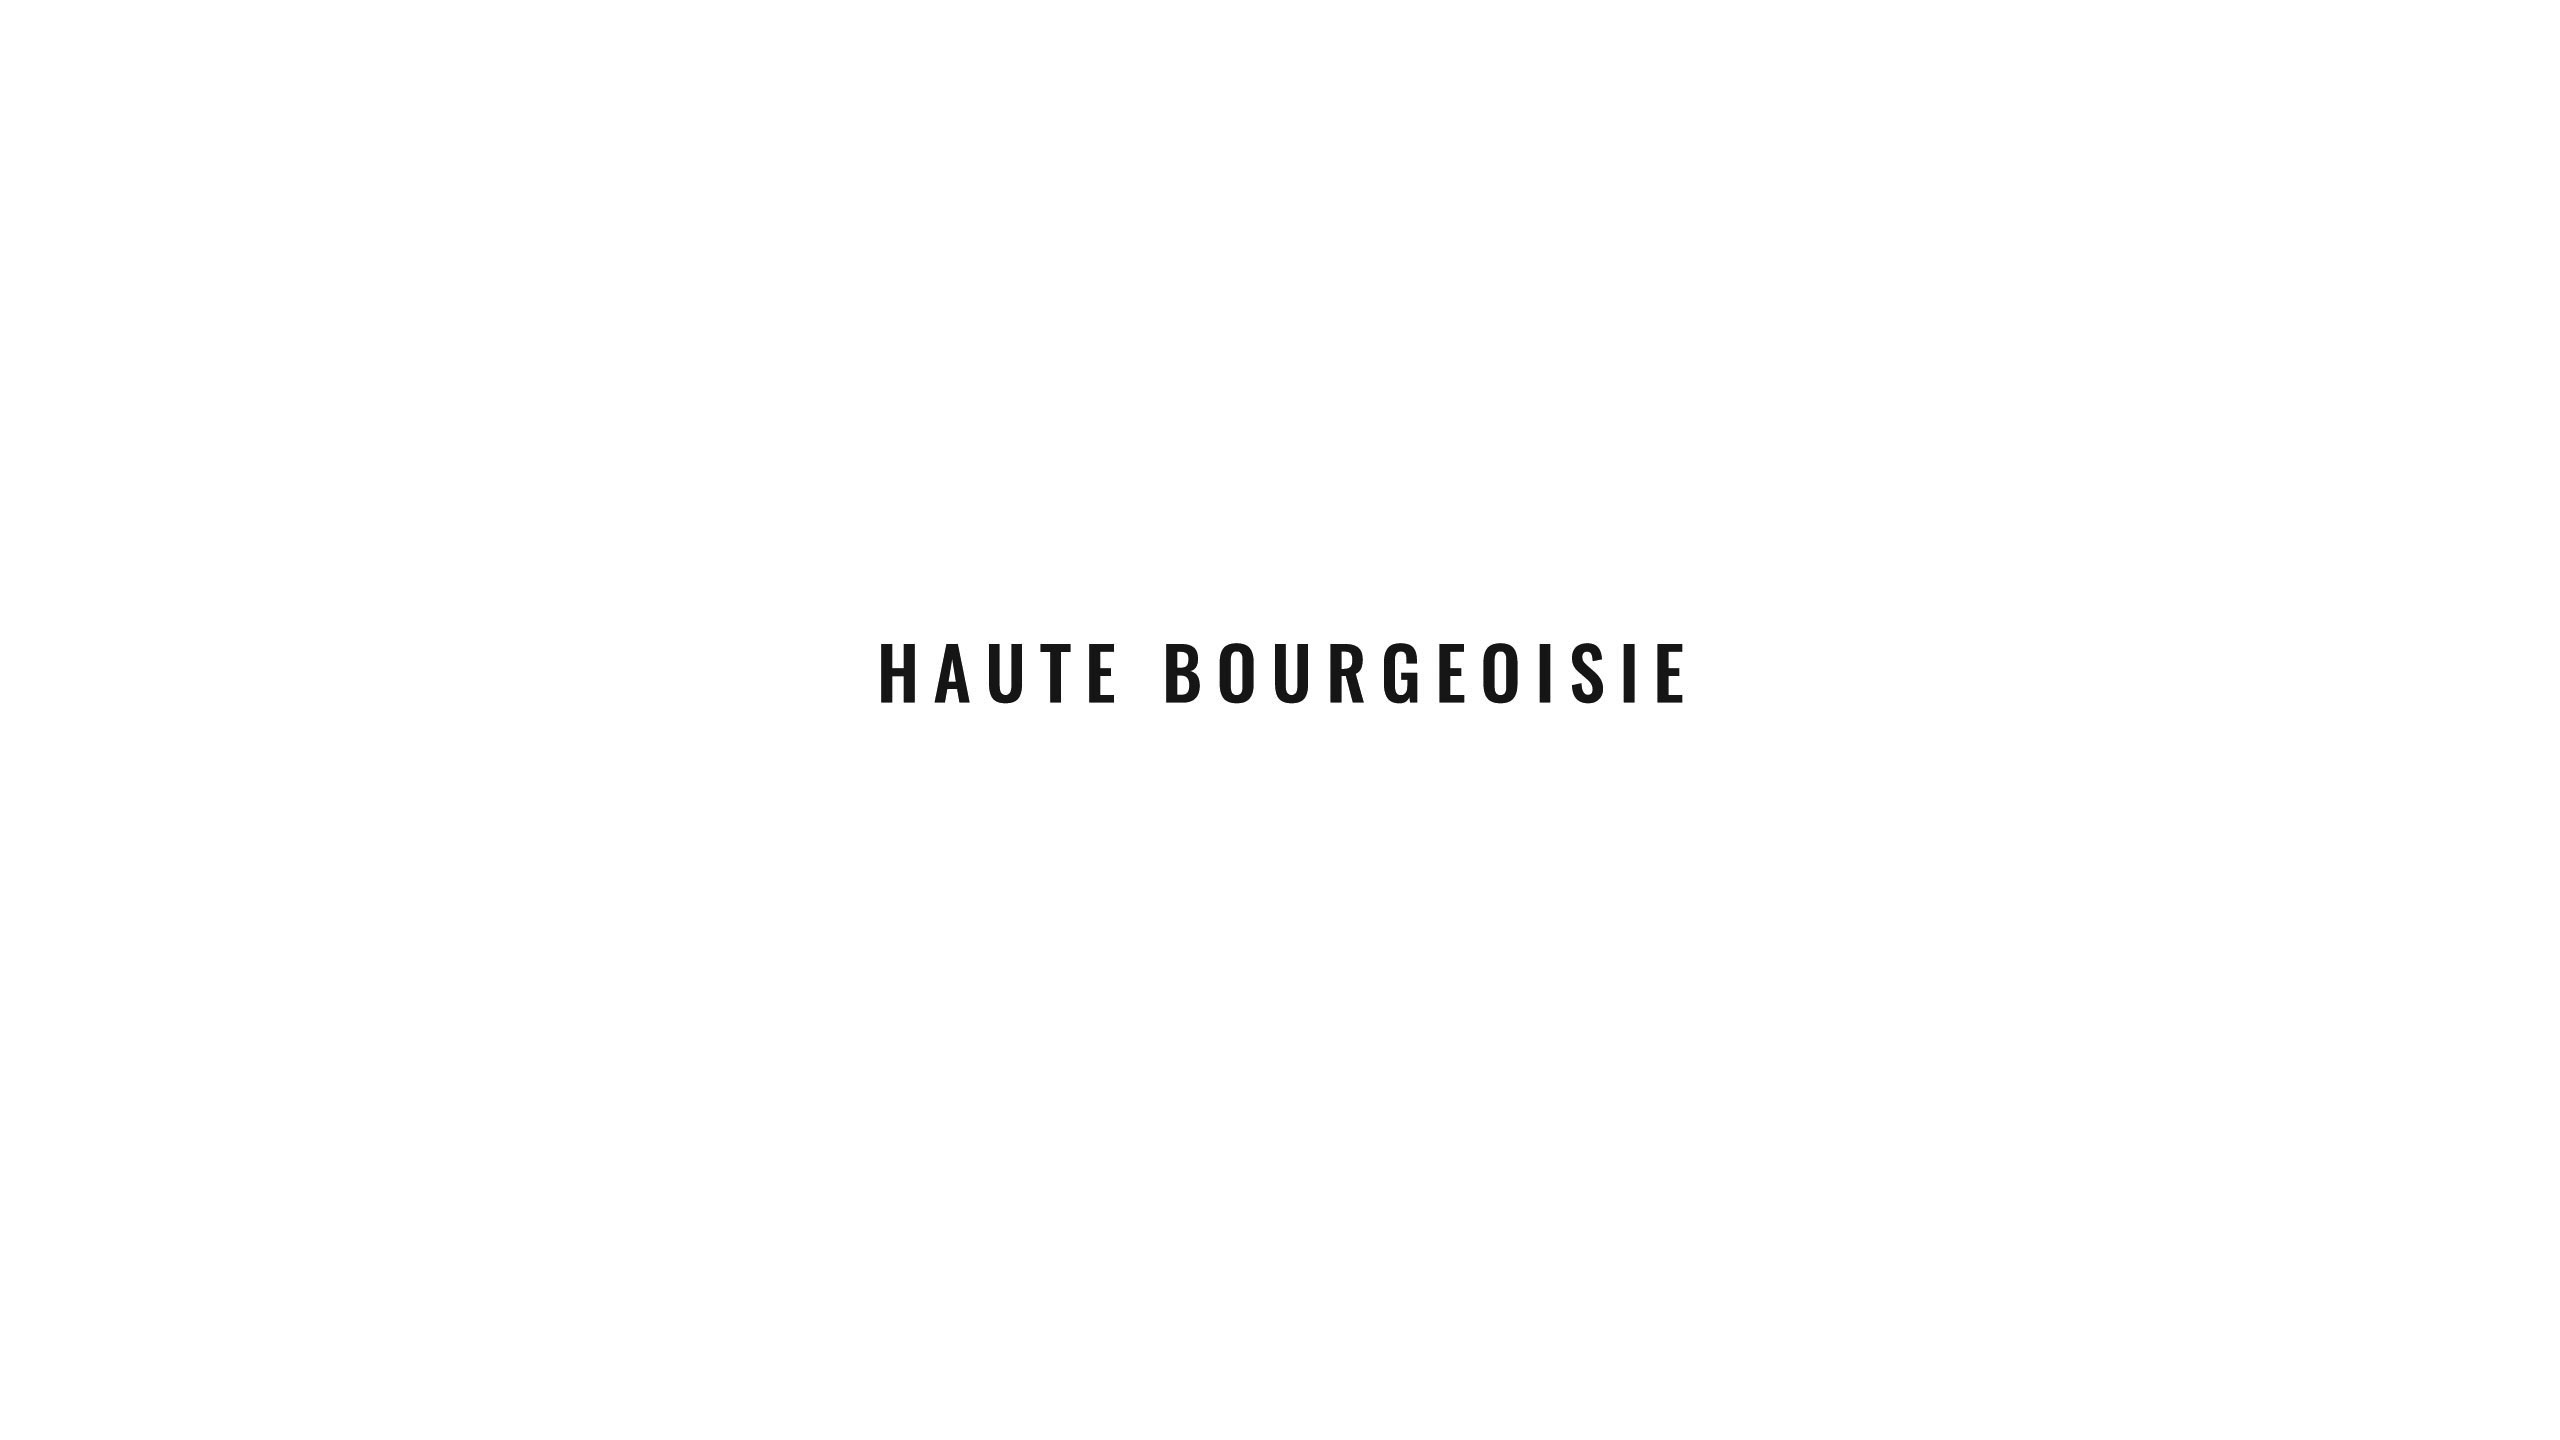 1a_Text_HAUTE-BOURGEOISIE